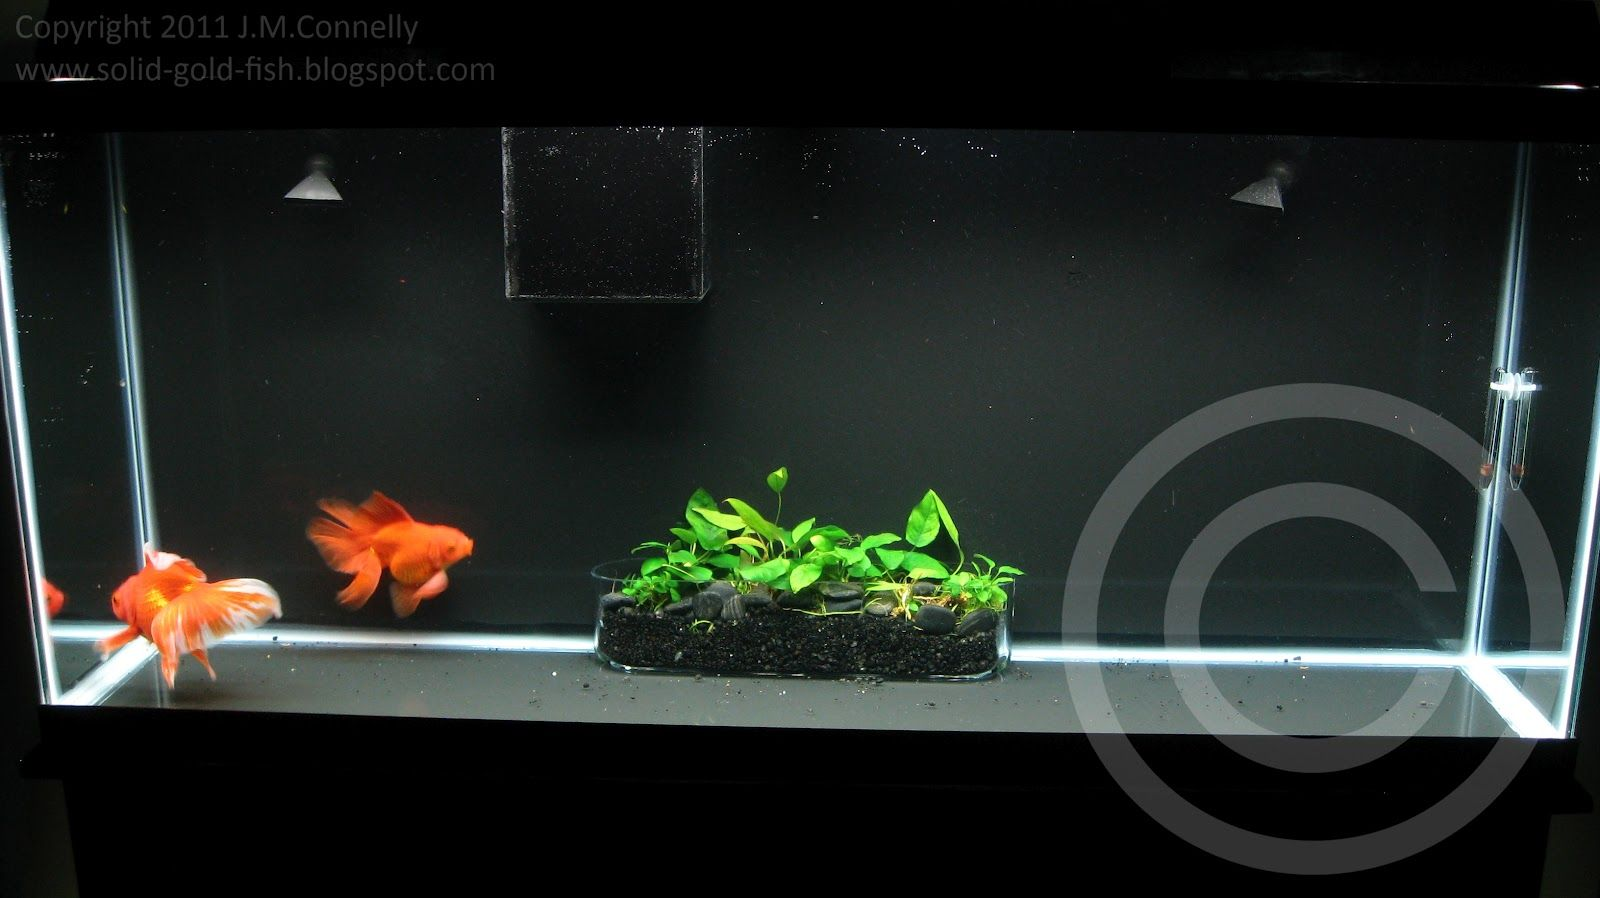 Fish in tank with goldfish - Then I Carefully Lowered The Planter Into The Tank And Viola